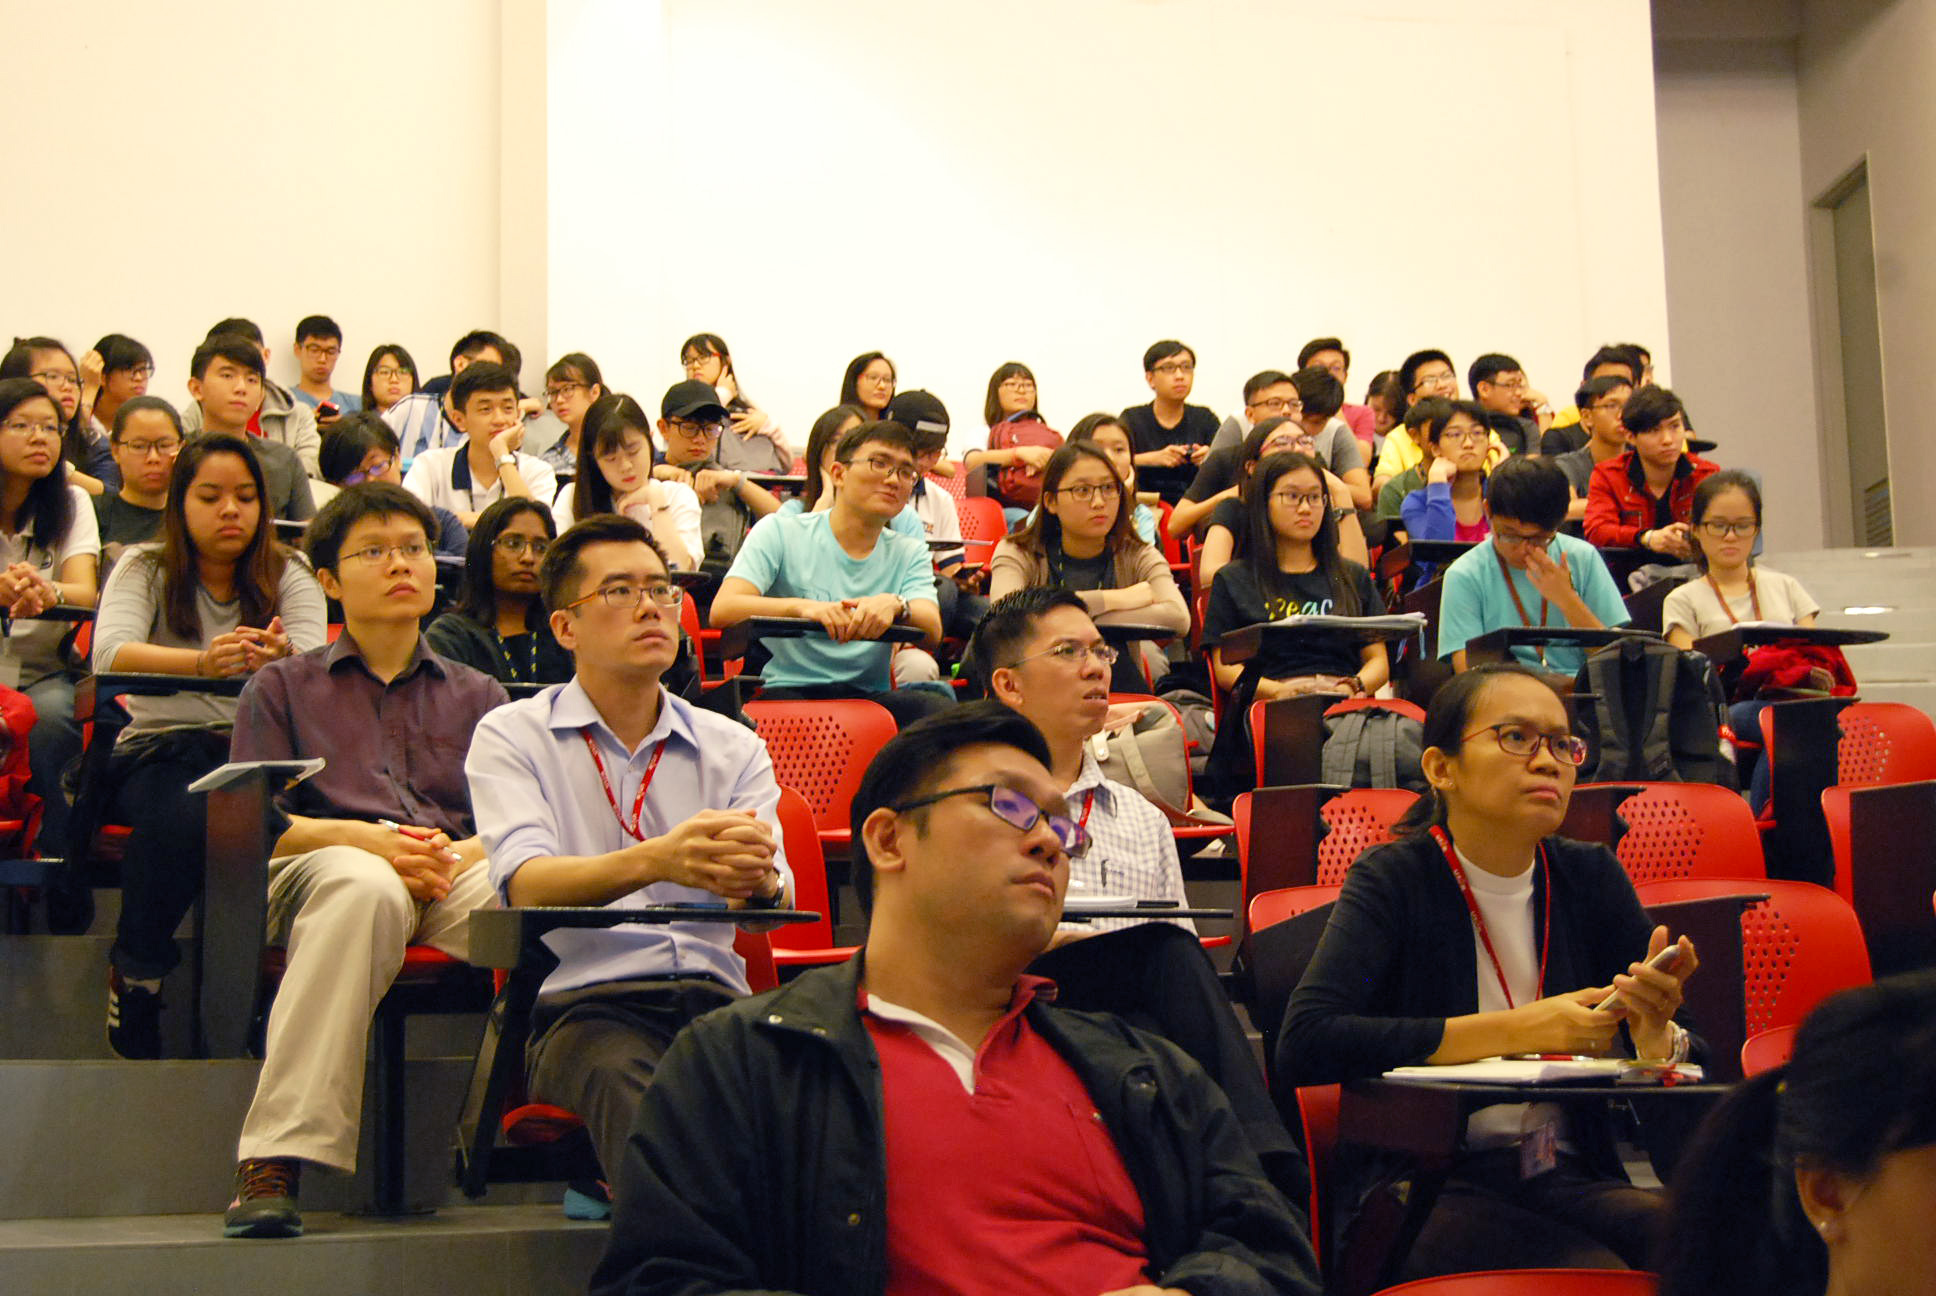 Staff and participants listening attentively to Stuart Soo